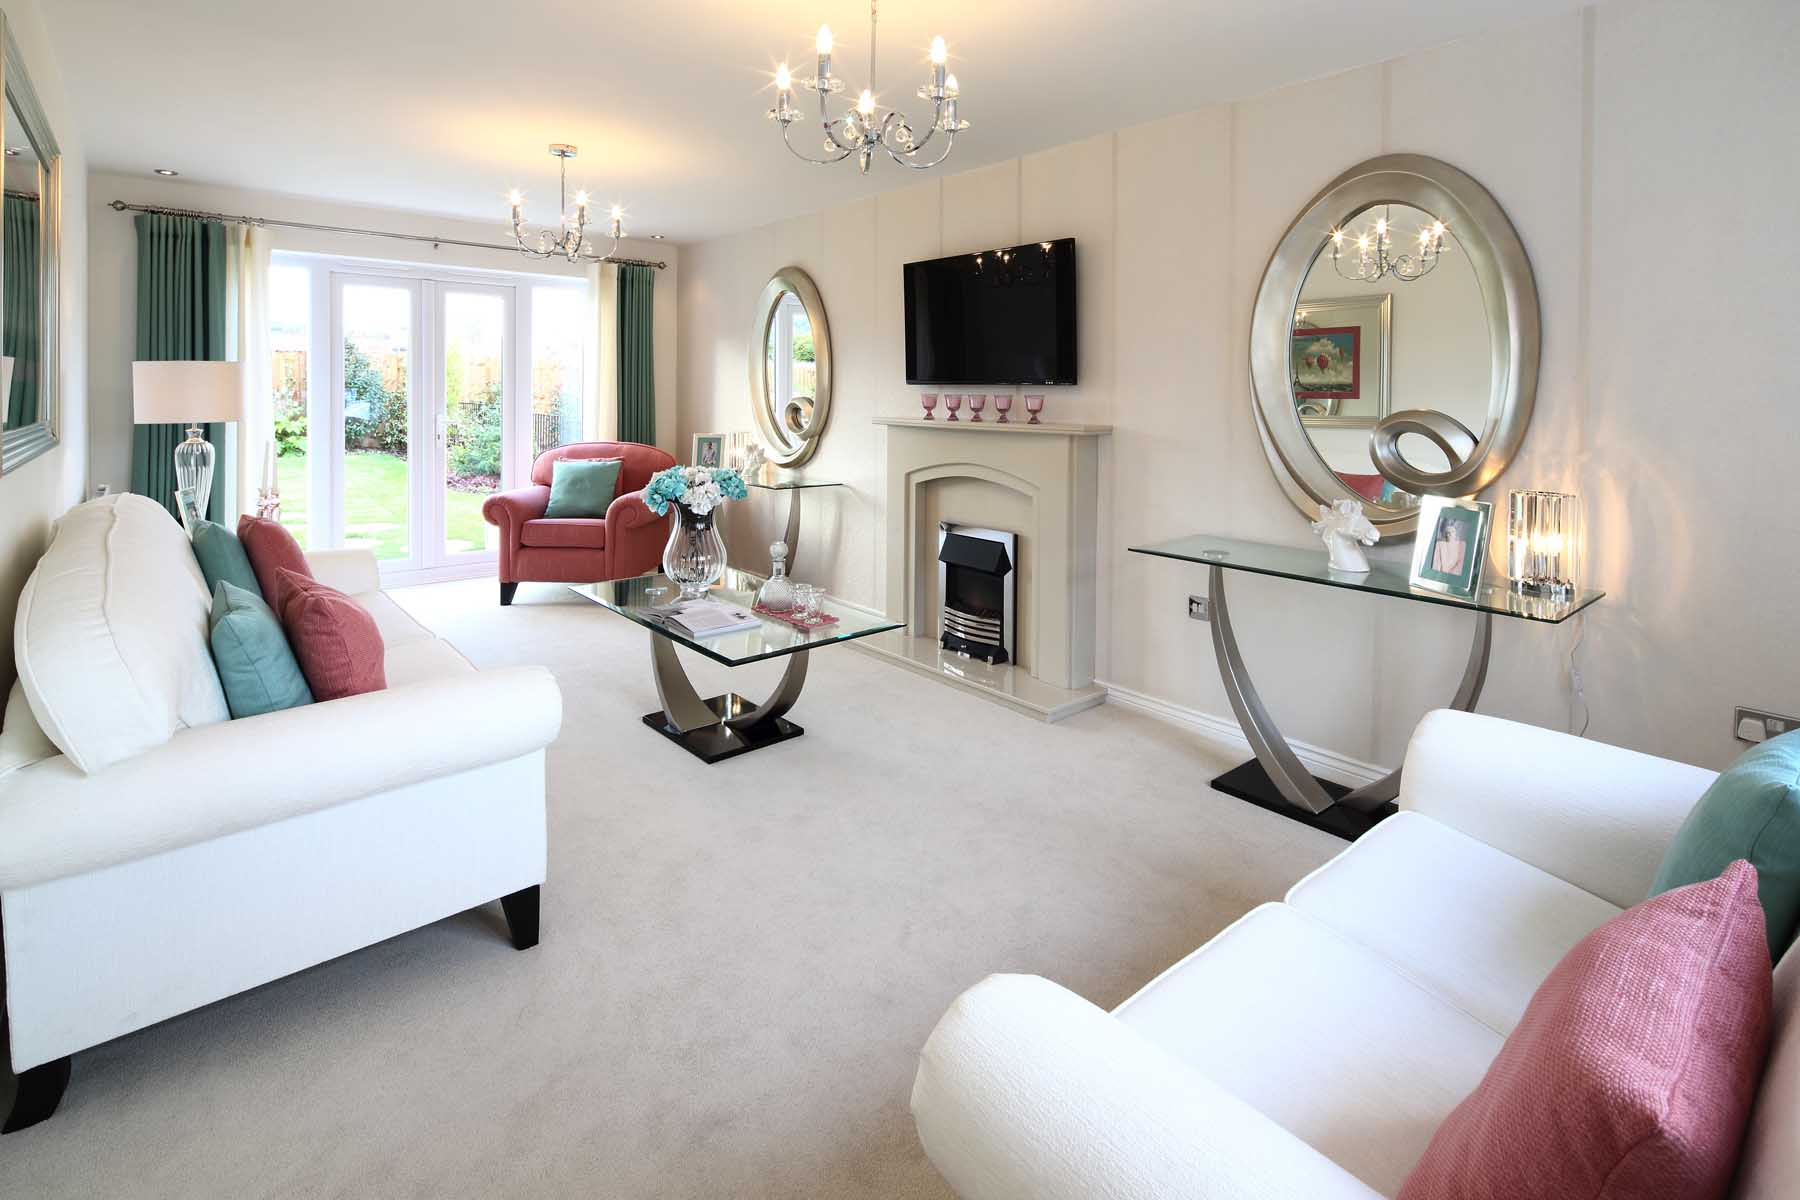 Spacious living room with French doors to the rear garden